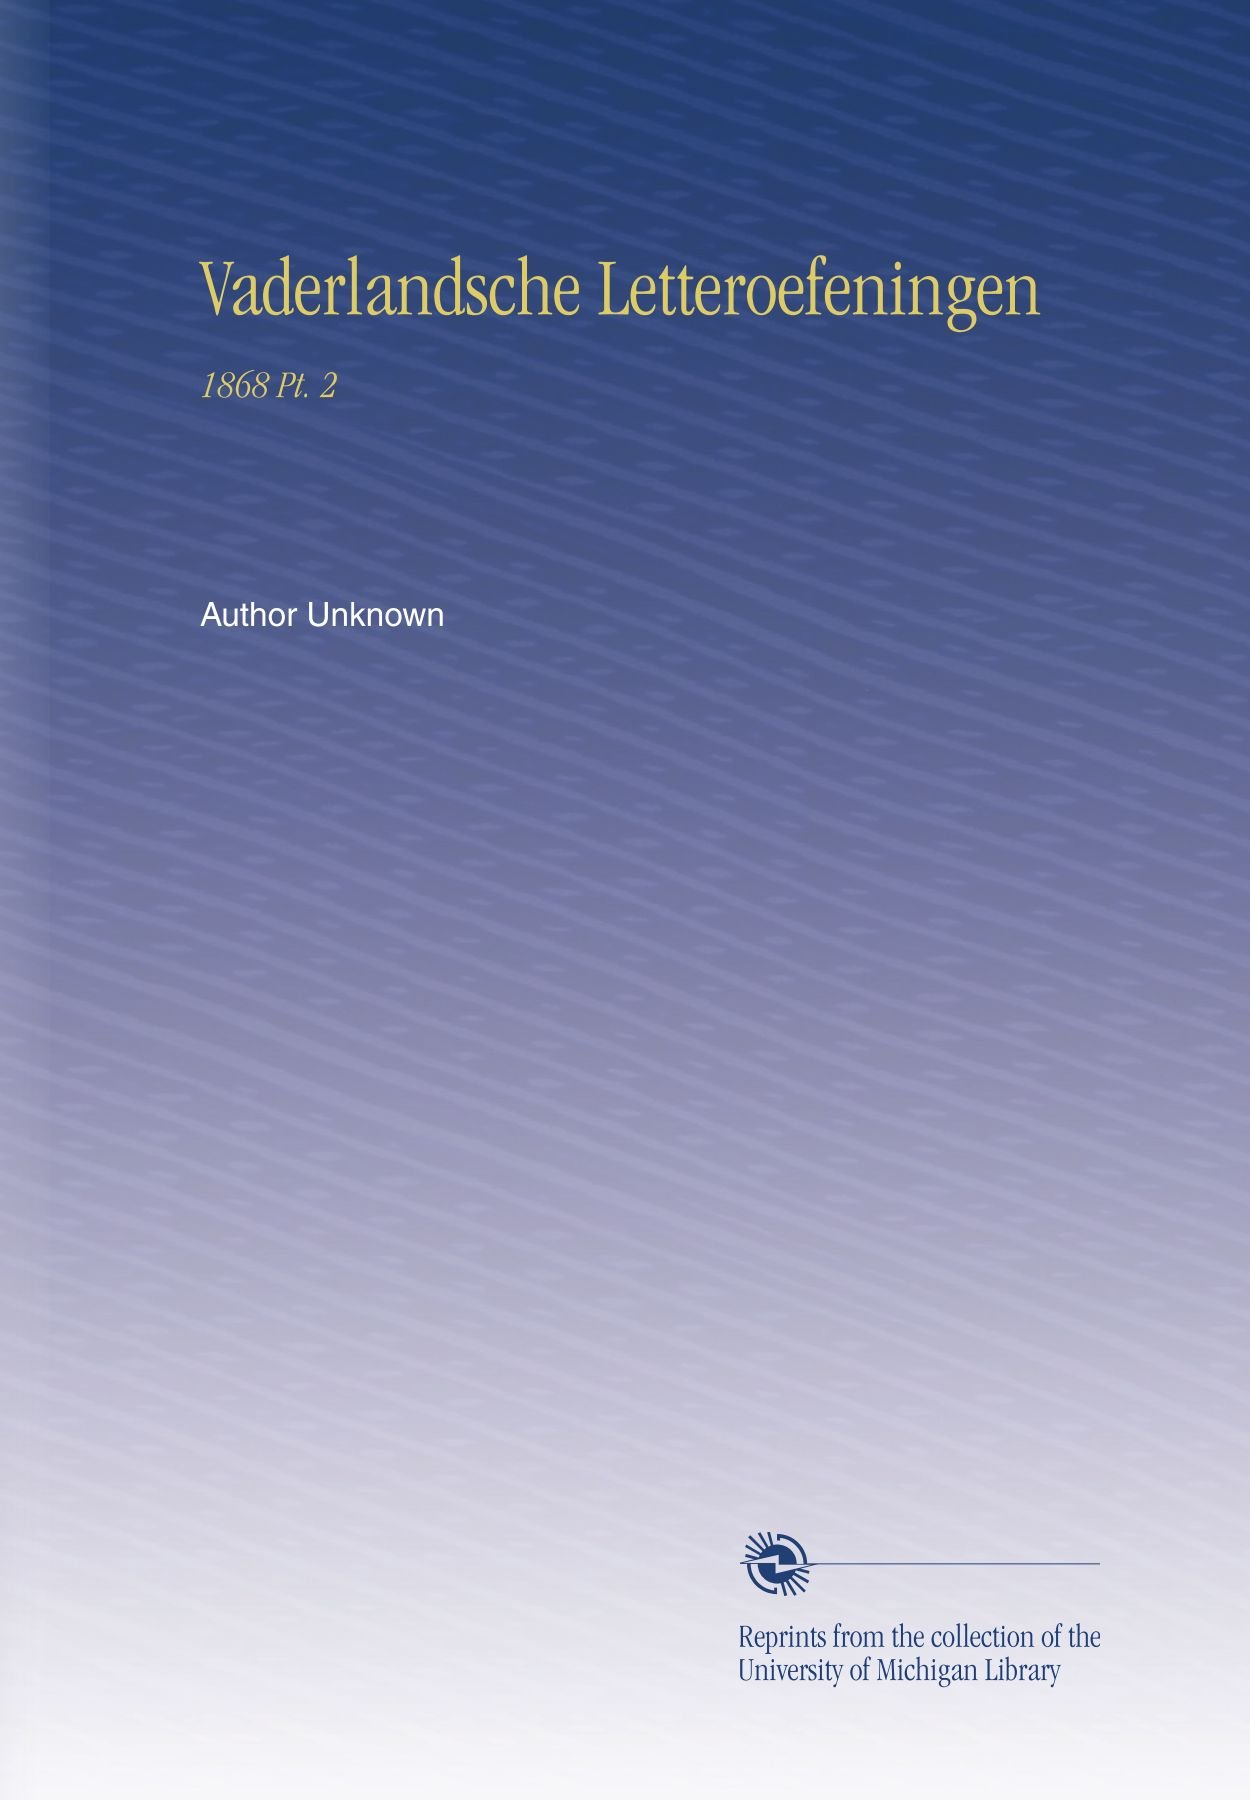 Vaderlandsche Letteroefeningen: 1868 Pt. 2 (Dutch Edition) ebook